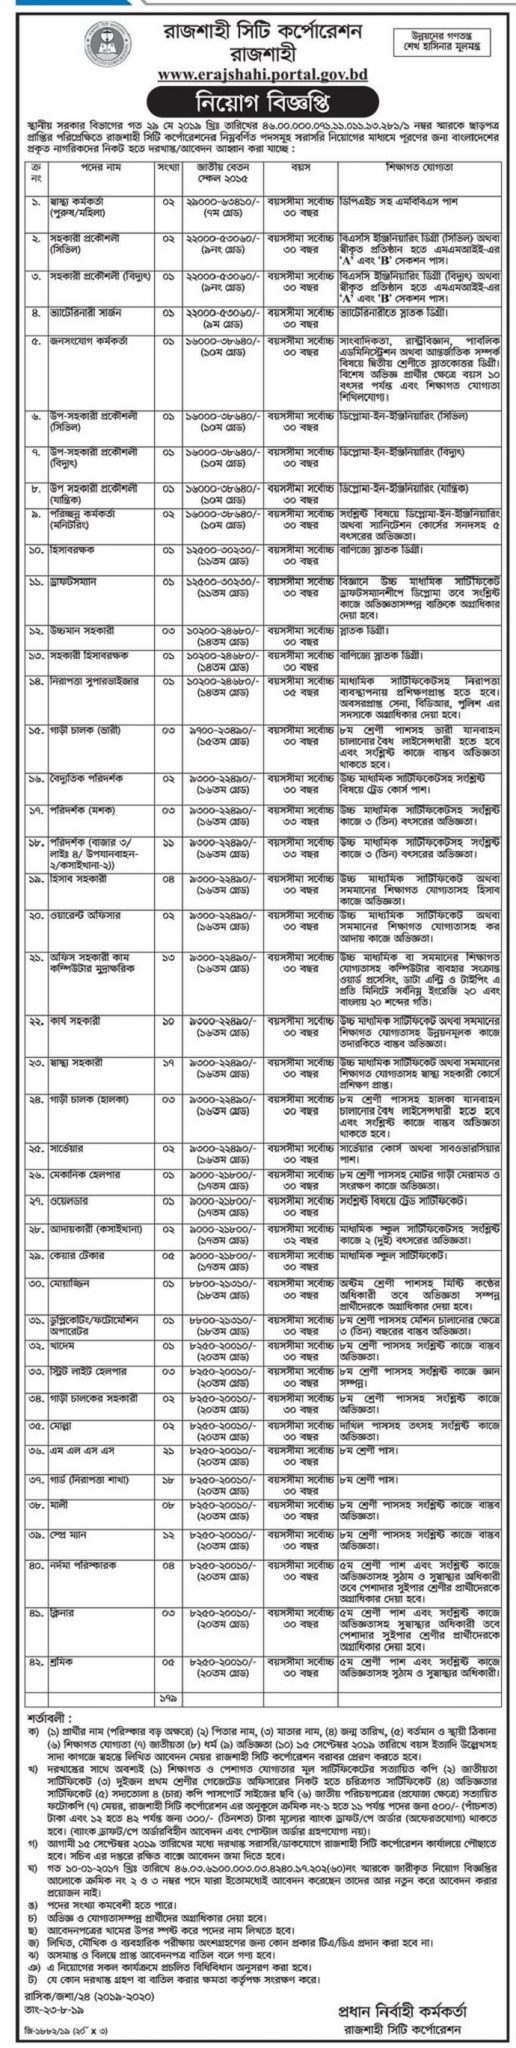 Rajshahi Development Authority (RDA) Job Circular 2019